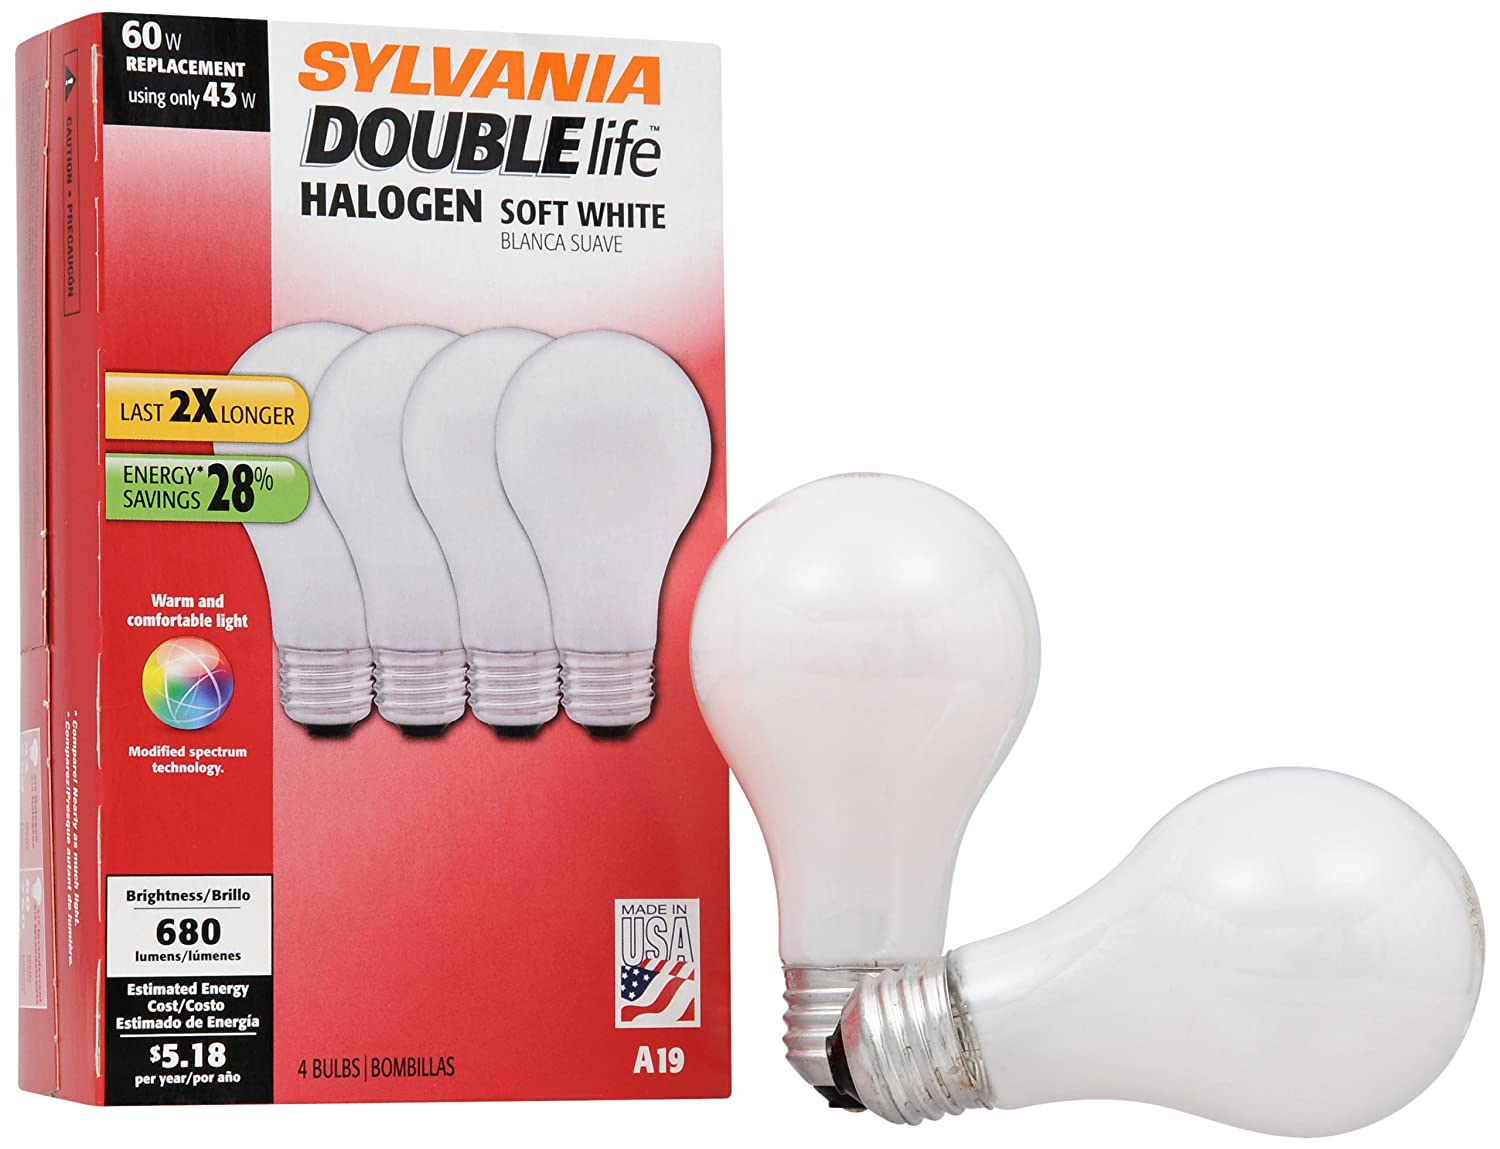 SYLAVNIA Halogen Dimmable Lamp / Replacing A19 100W Halogen Bulb Super Soft White / Medium Base E26 / 72 Watt / 2900 K - warm white, 2 Pack - Halogen Bulbs ...